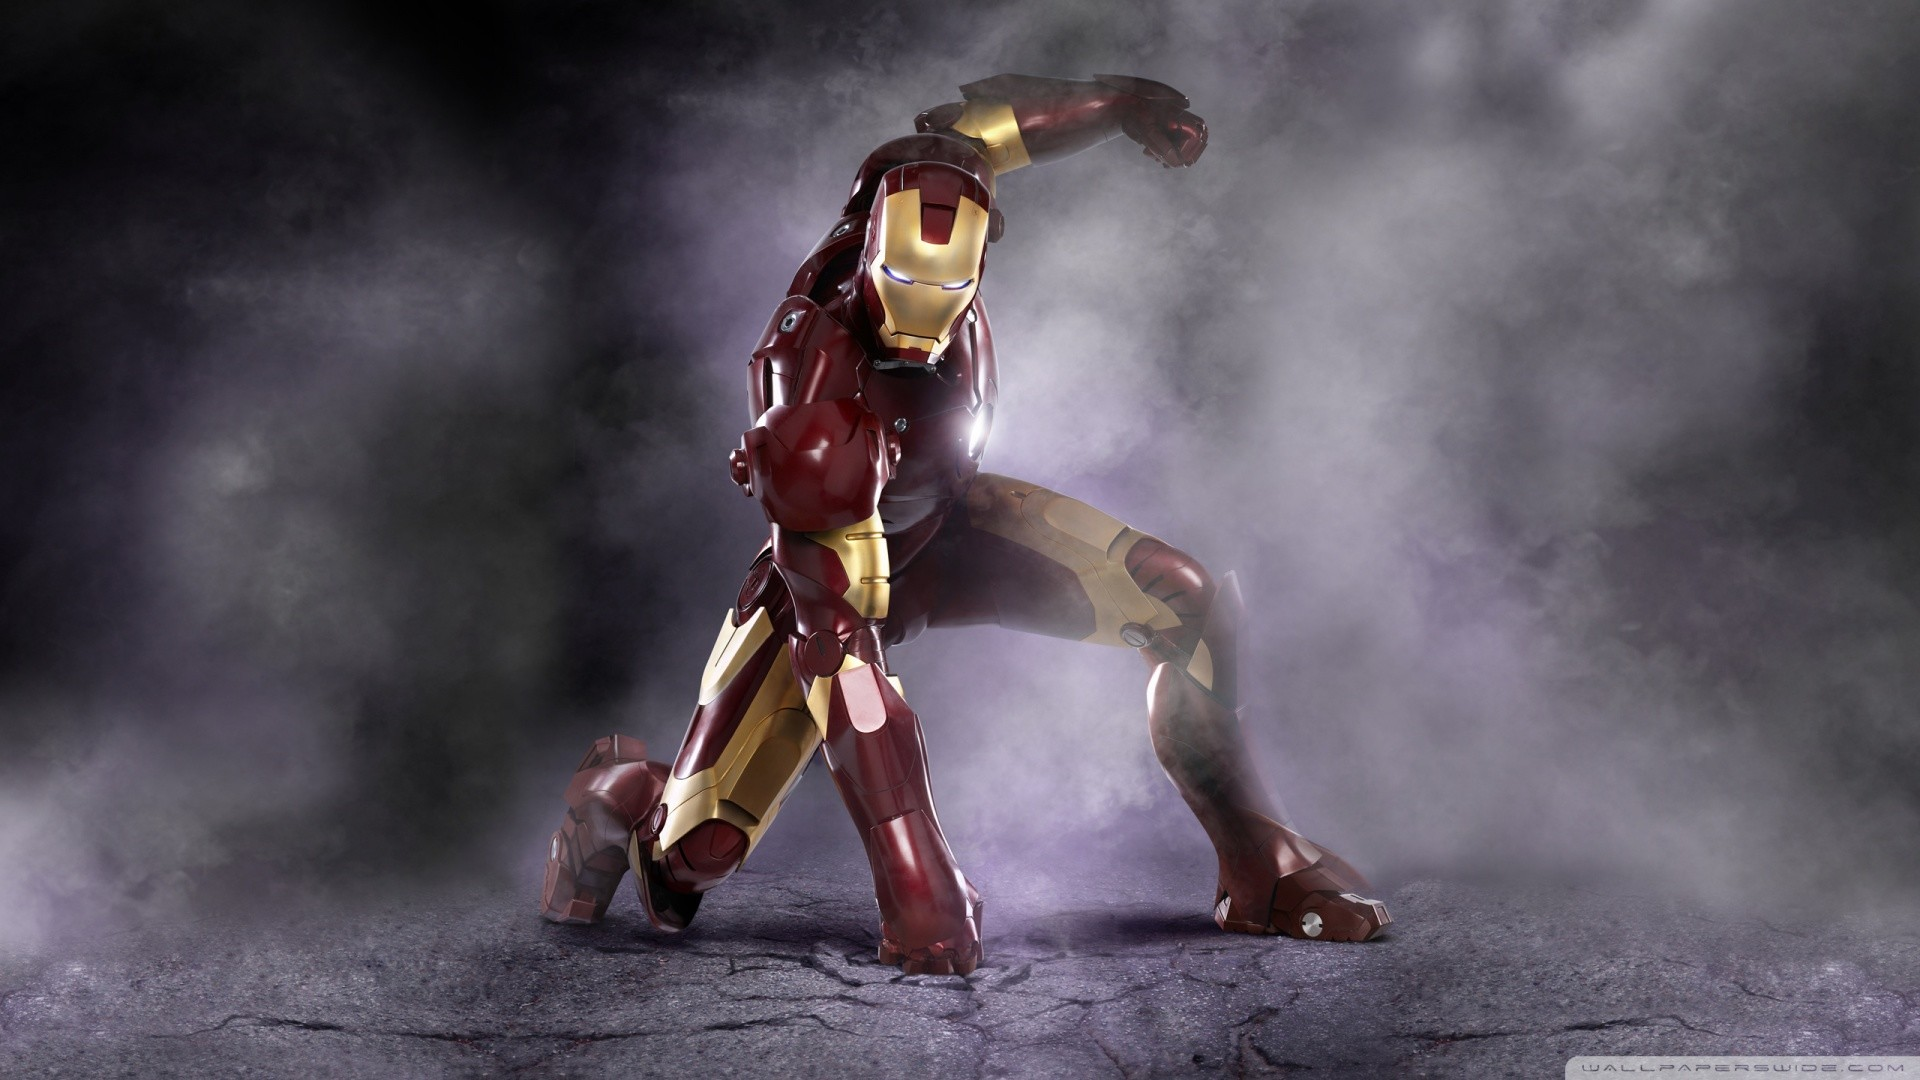 Interesting Iron Man HDQ Images Collection: 780884970, 1920×1080